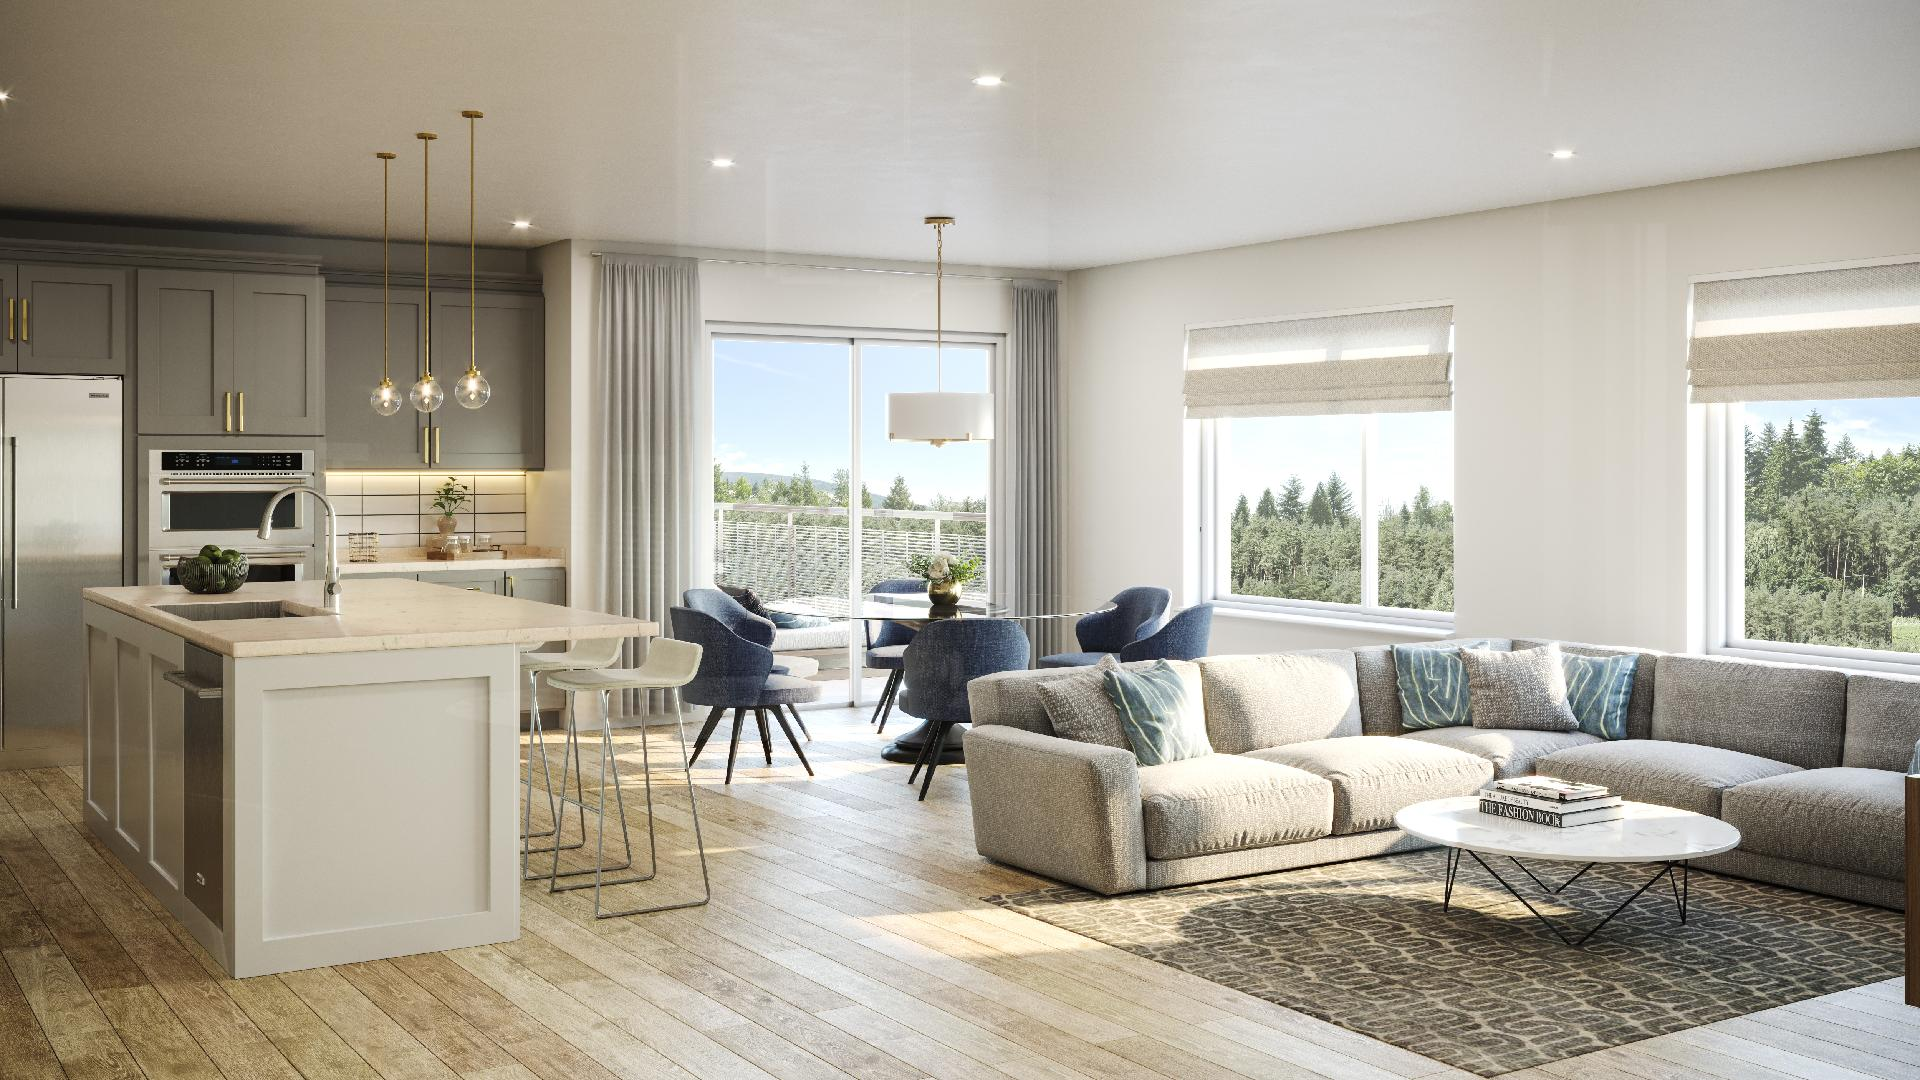 Plenty of windows flood the homes in bright light as shown in the Highlands great room